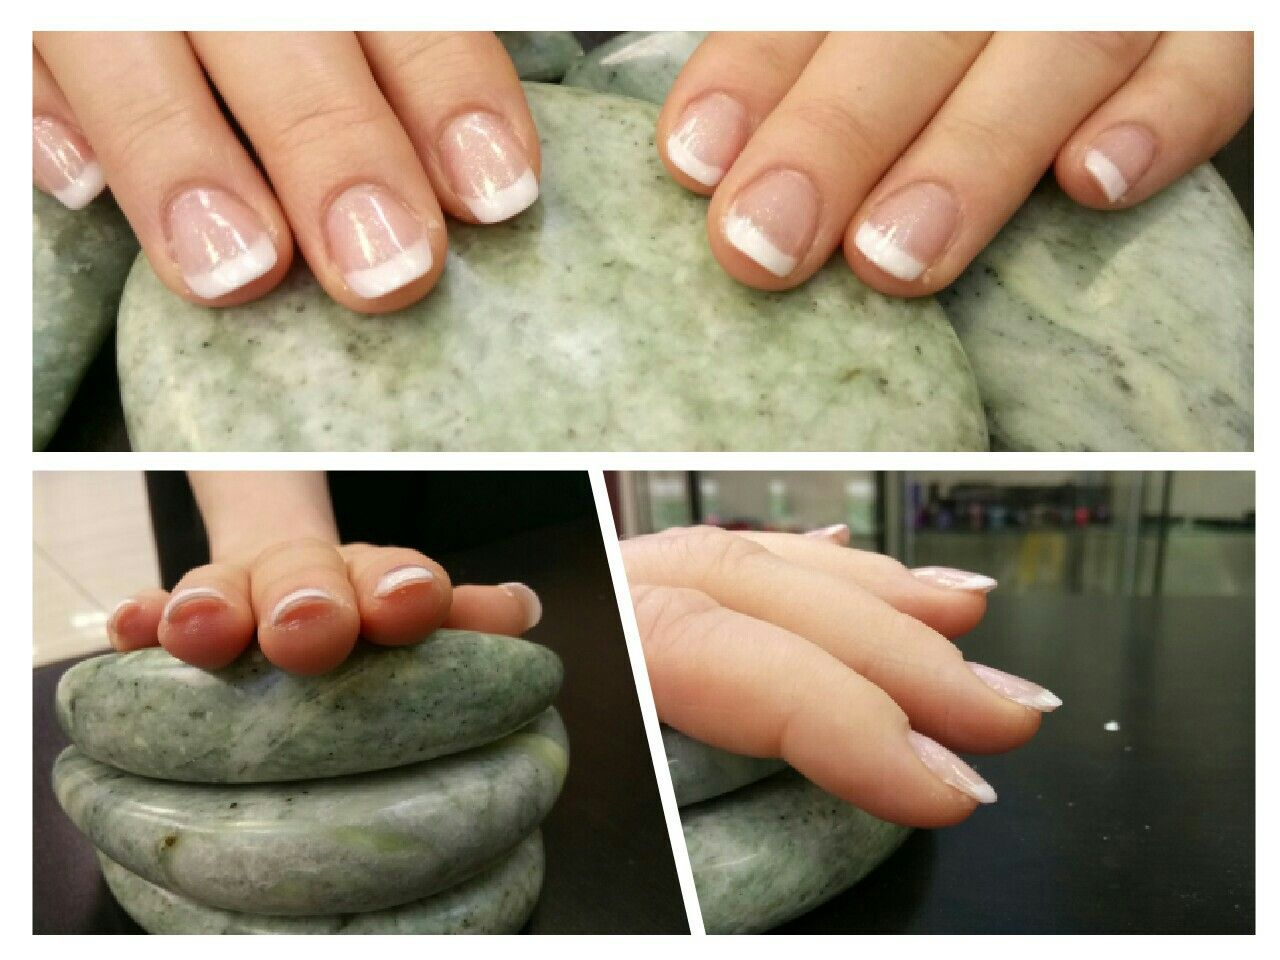 Backfill On Gel Nail Extensions Using Reverse French Technique Gel Nail Extensions Gel Nails Nails